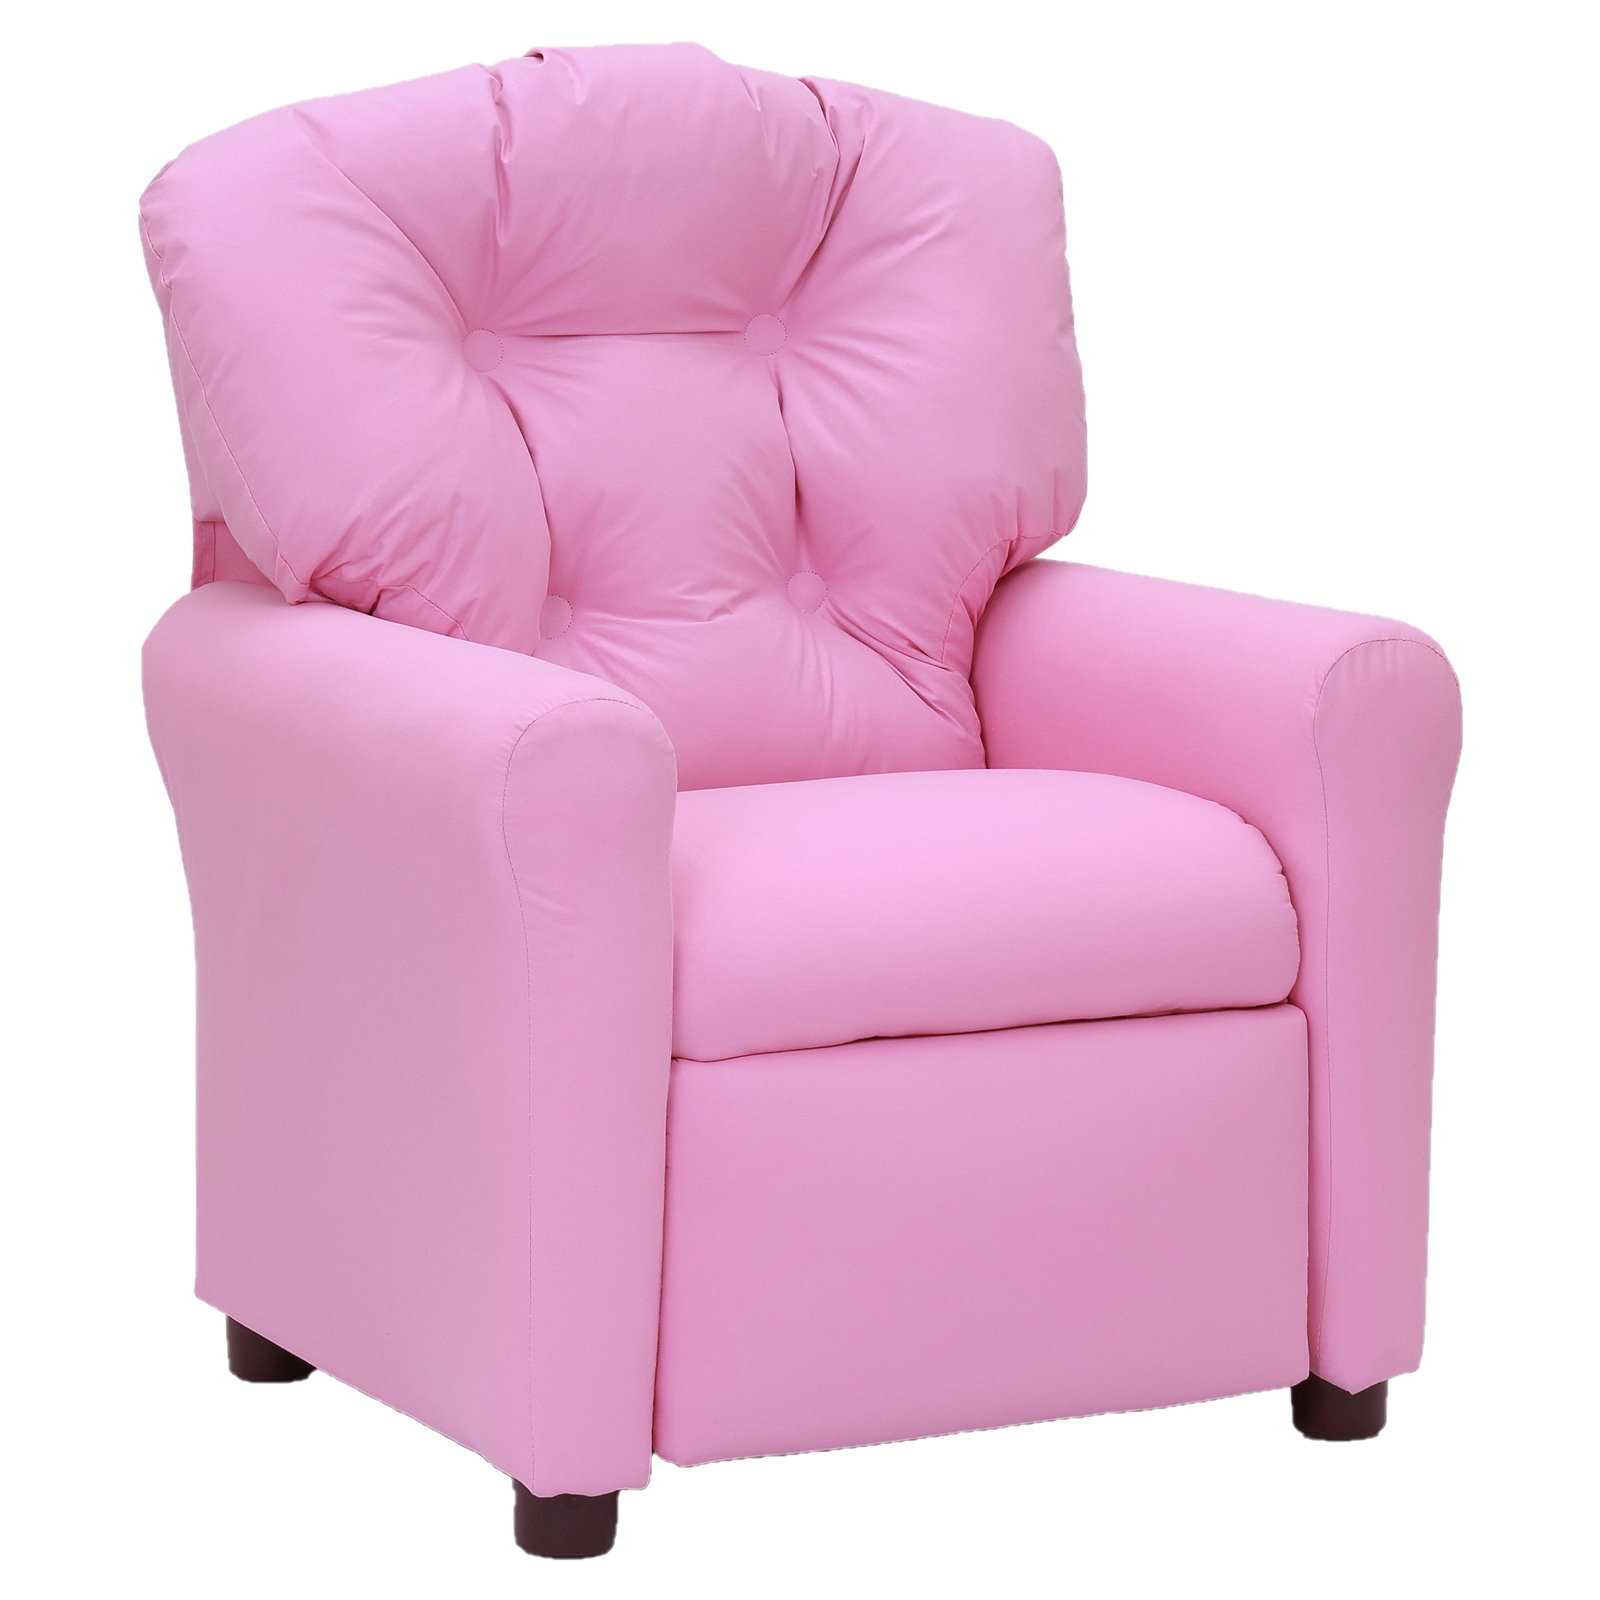 Sanford traditional microfiber childrens recliner pink for Toddler lounge chair